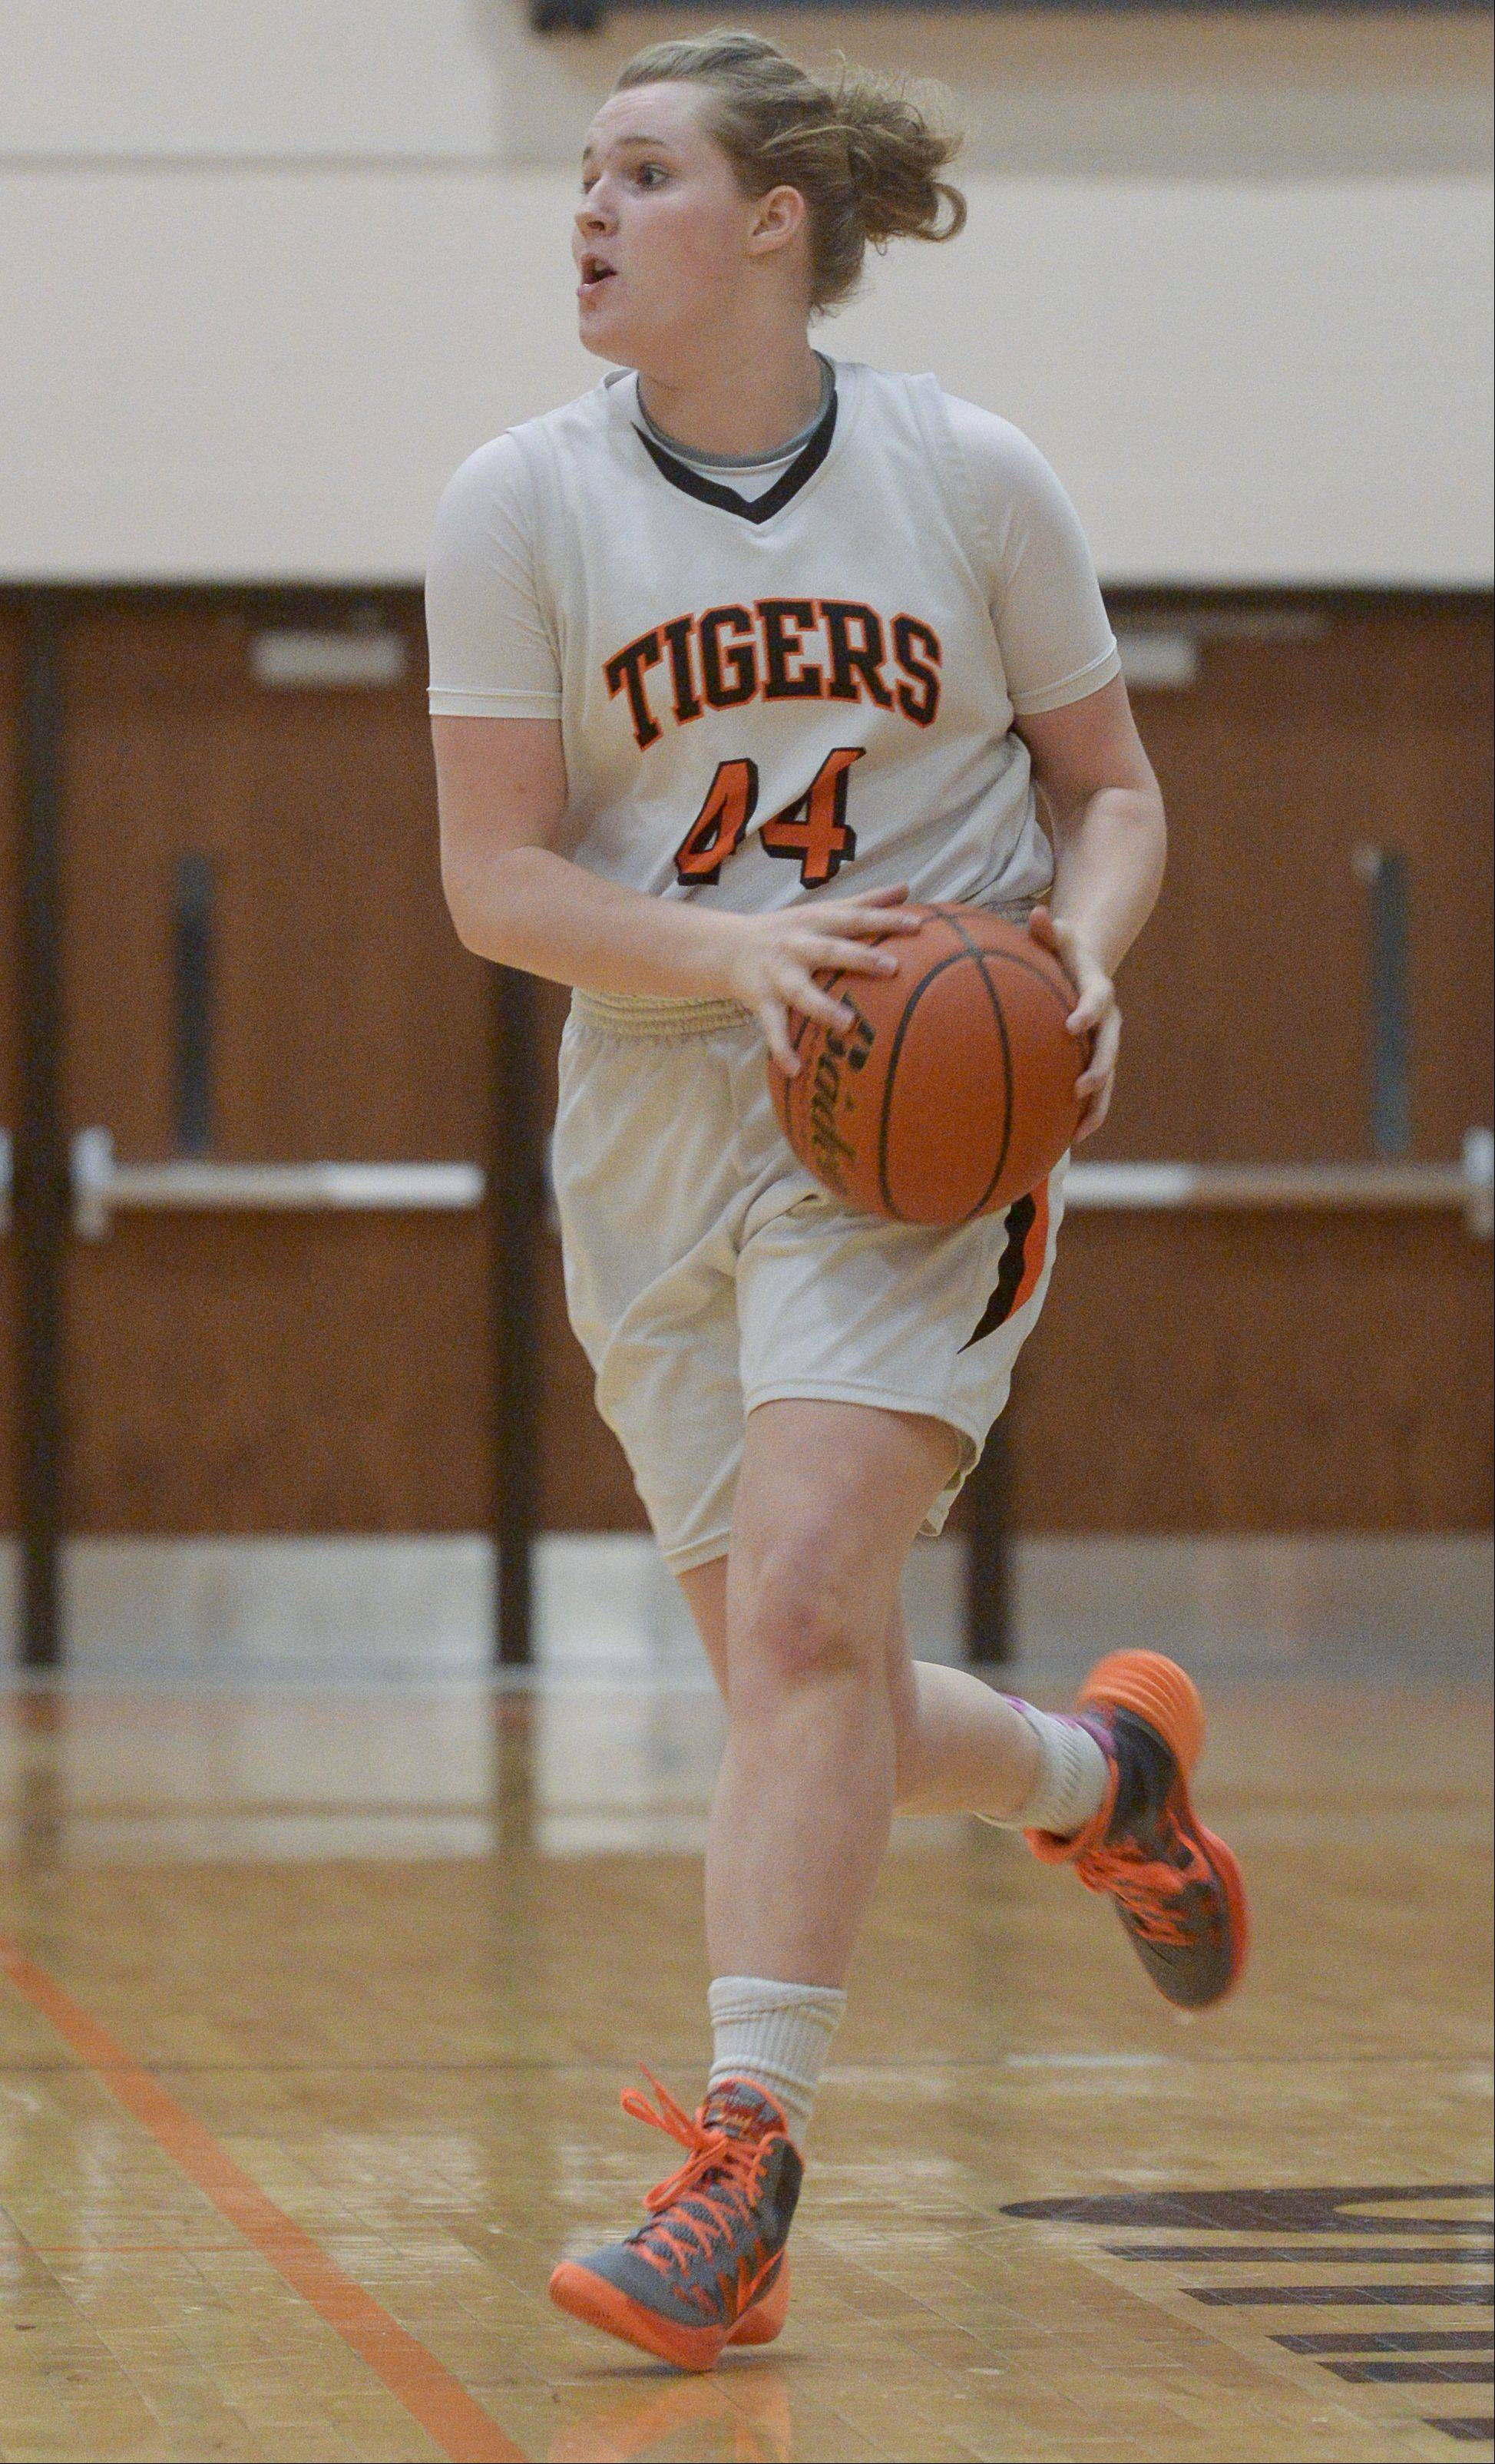 Photos from the Naperville North at Wheaton Warrenville South girls basketball game on Thursday, Jan. 30.